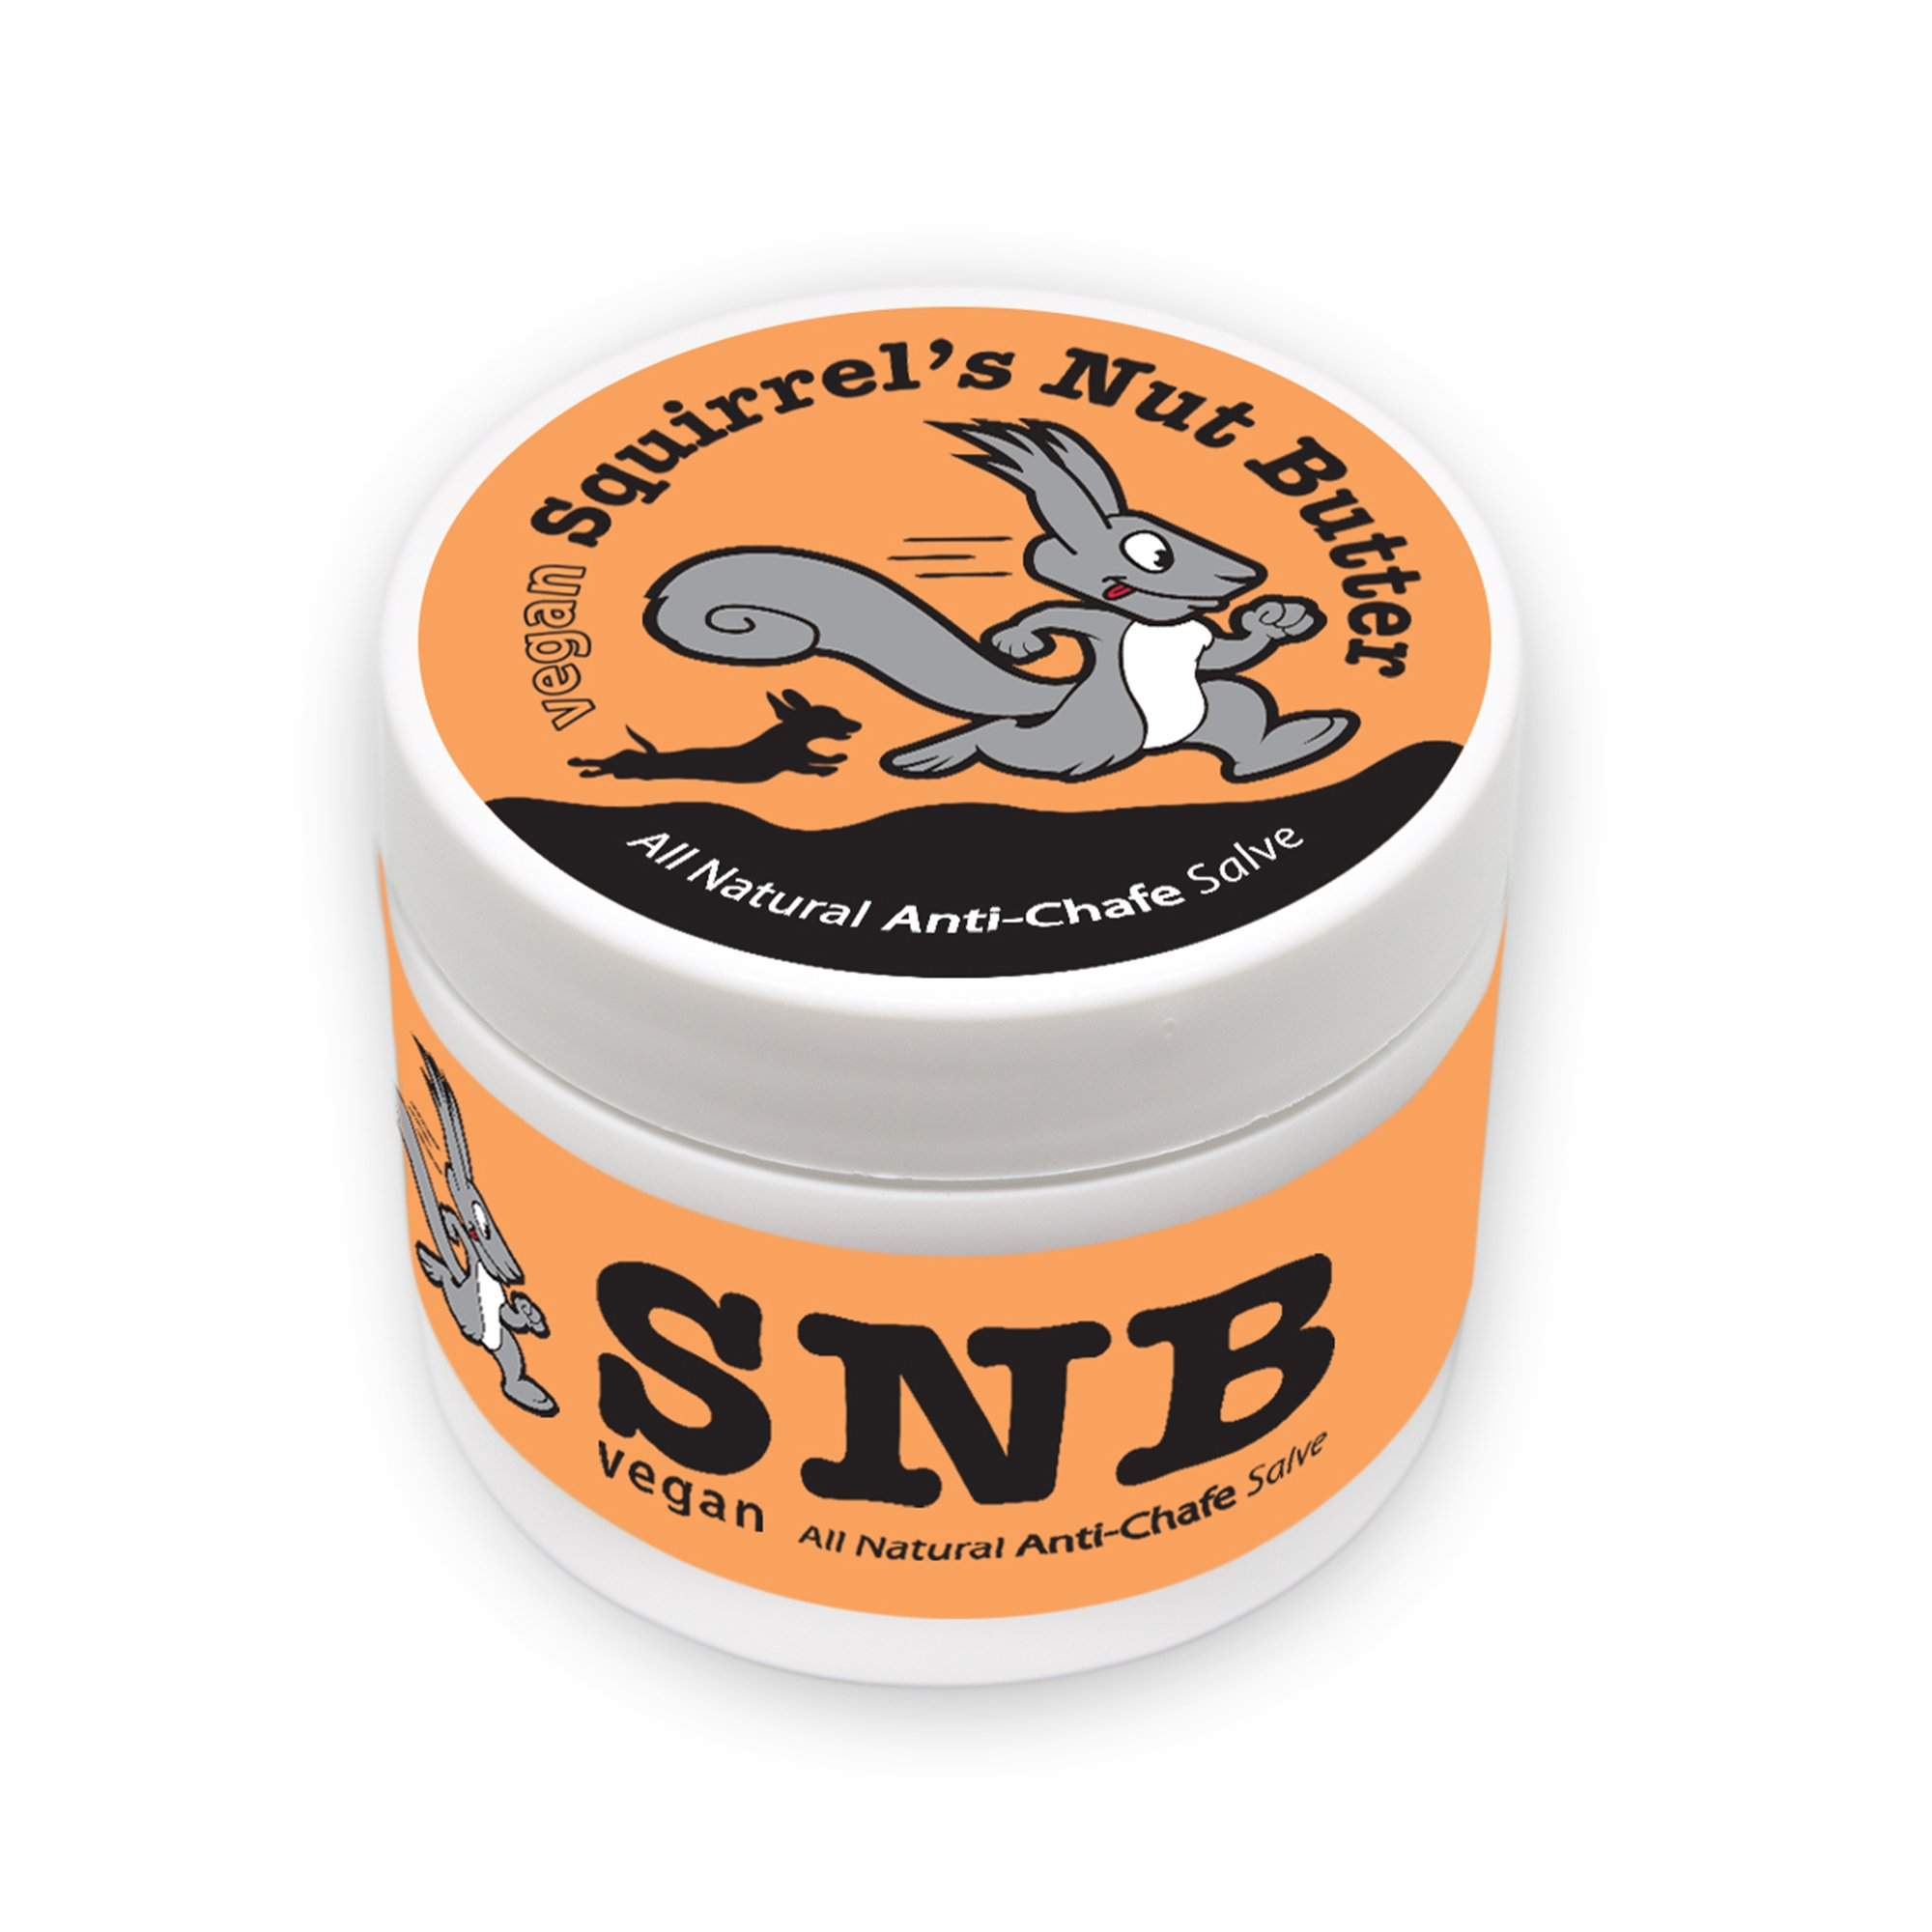 Squirrel's Nut Butter Vegan All Natural Anti Chafe Salve, Tub, 2.0 oz